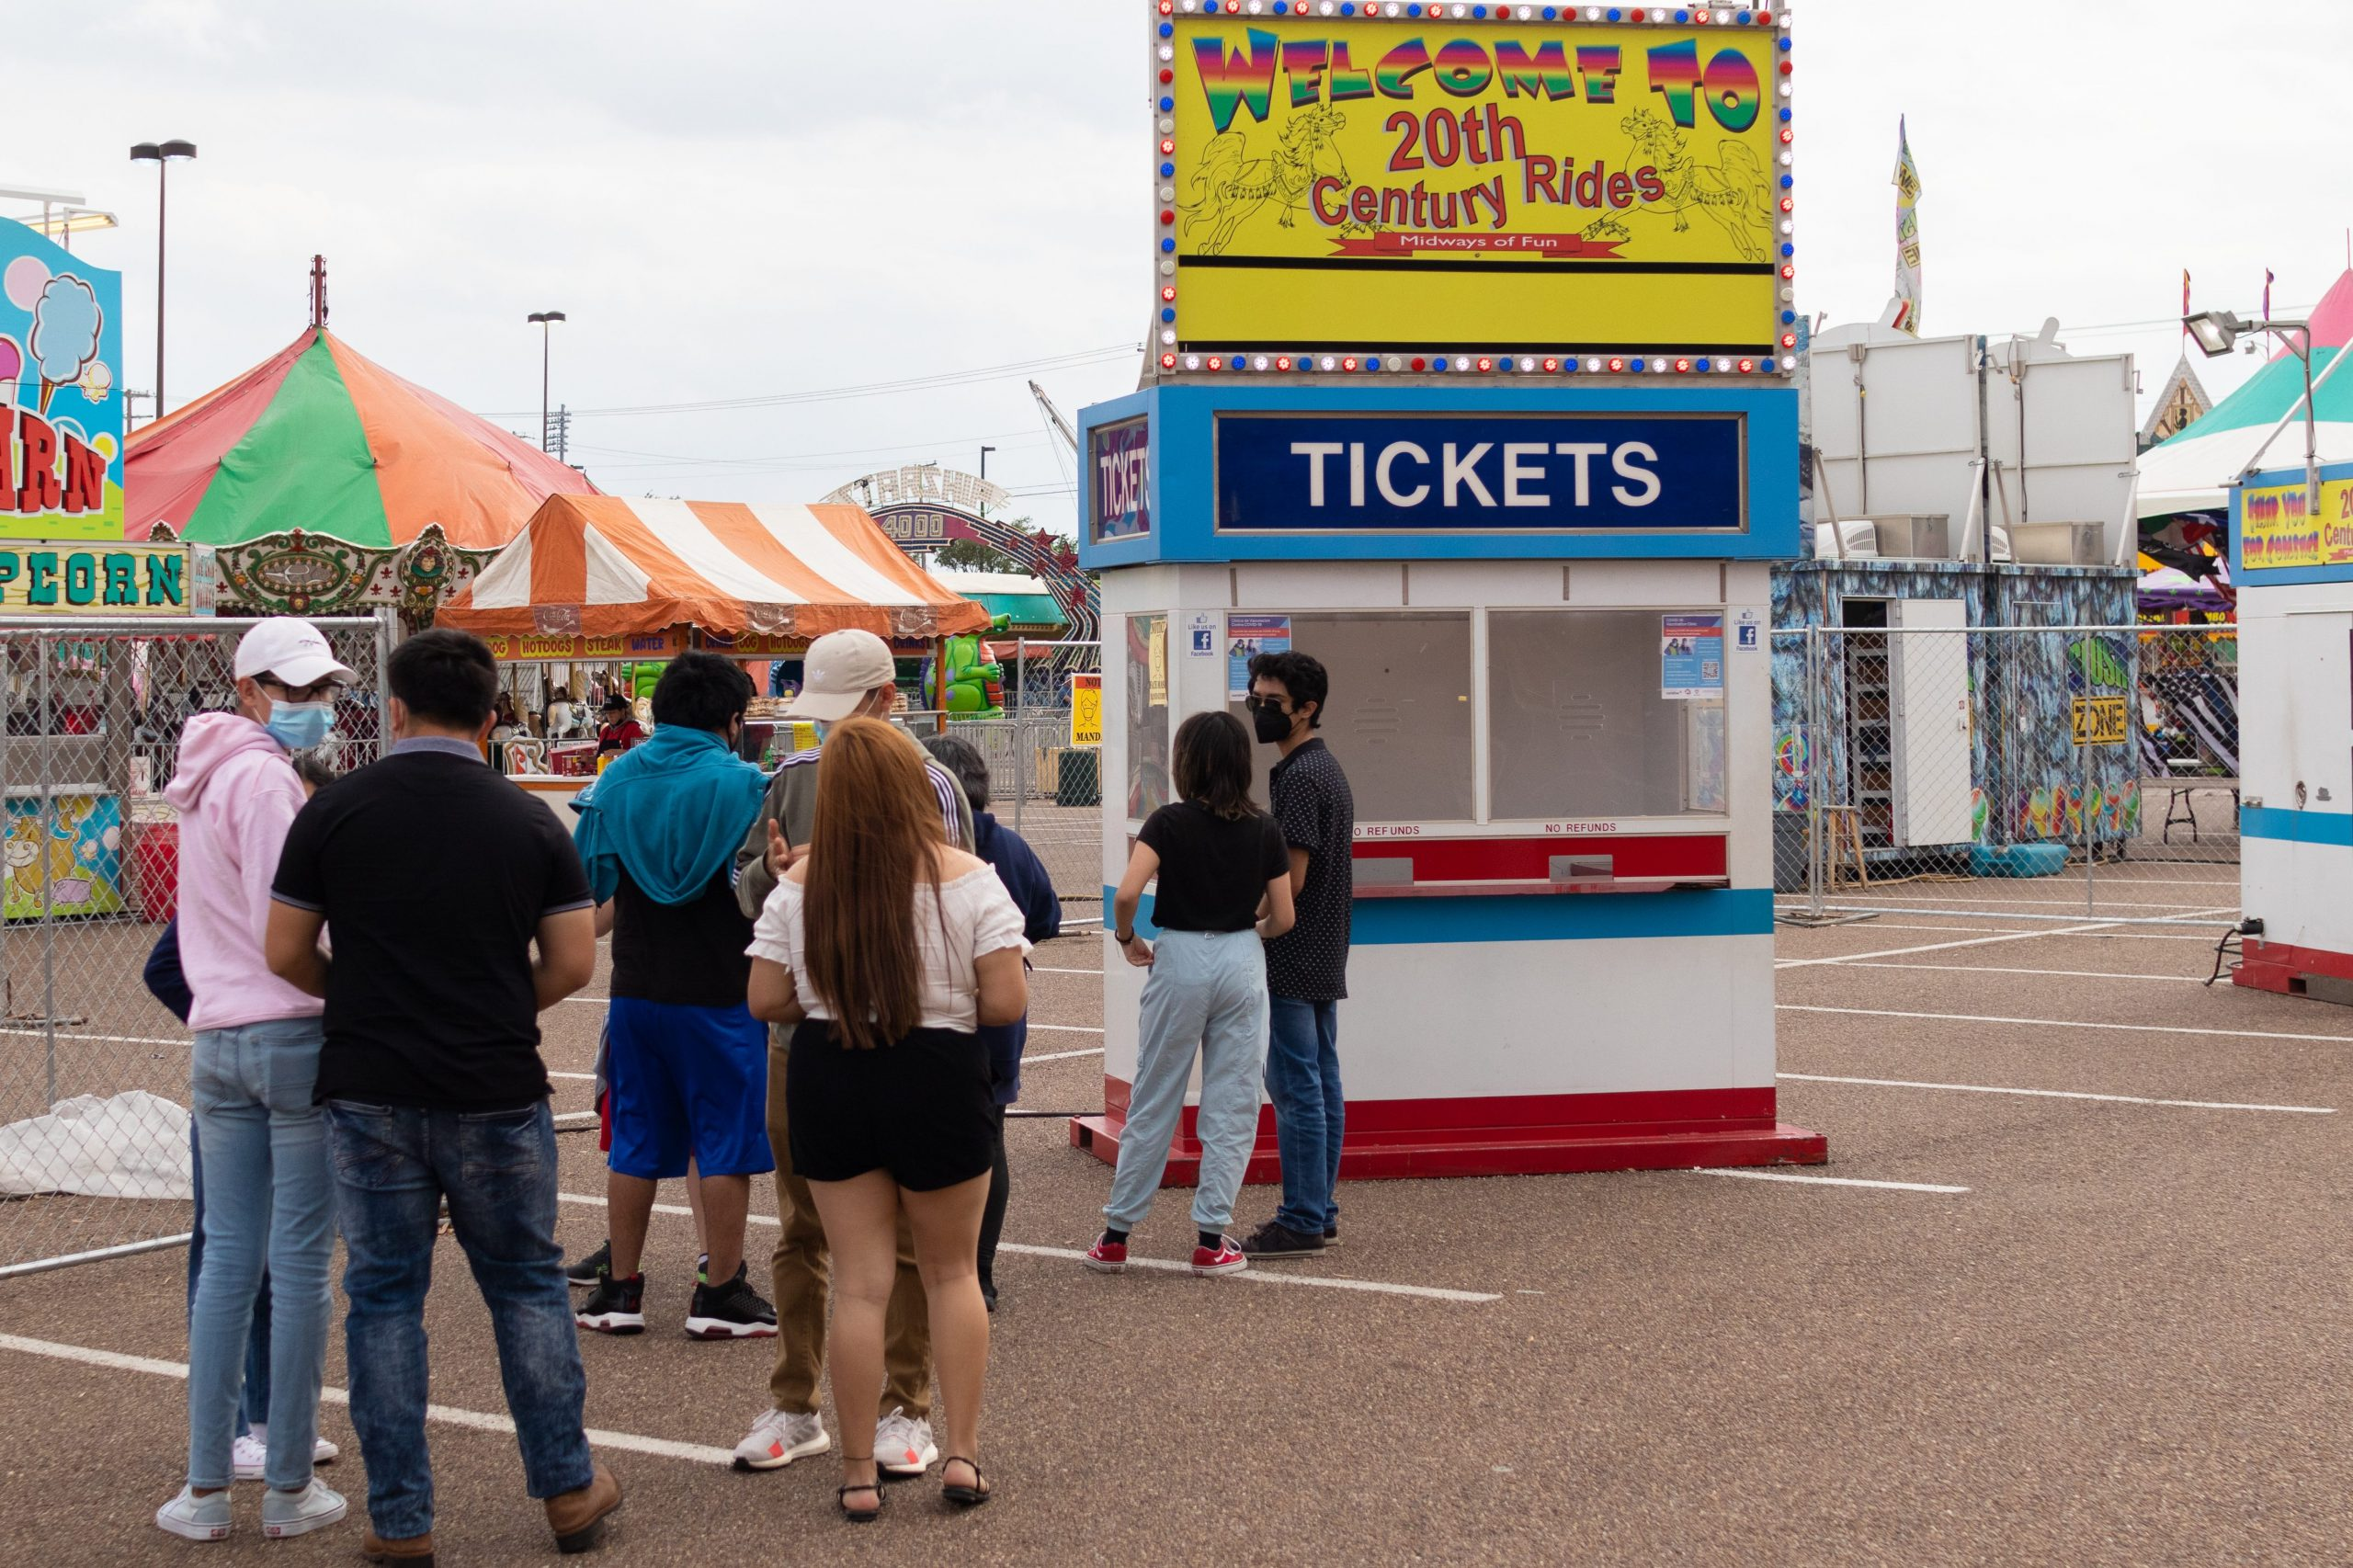 Carnivalgoers wait in line to purchase tickets